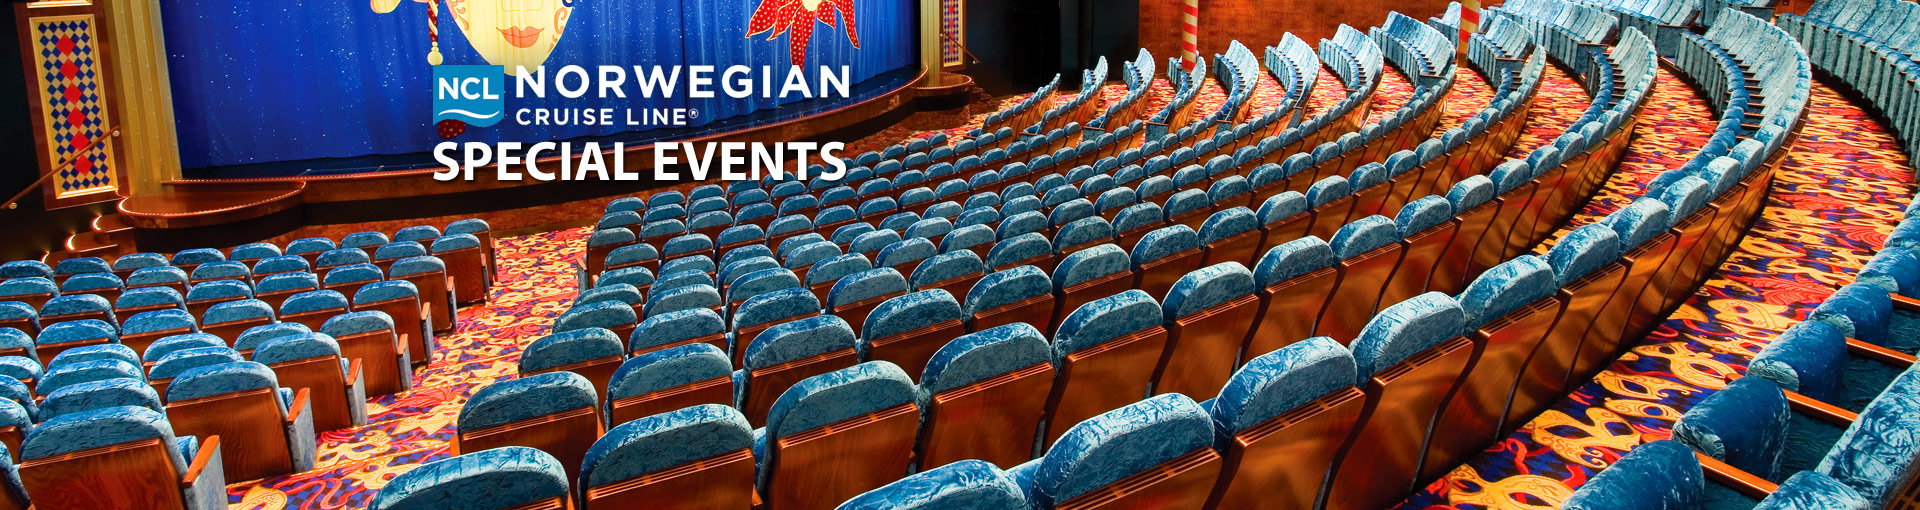 Norwegian Cruise Line Special Events